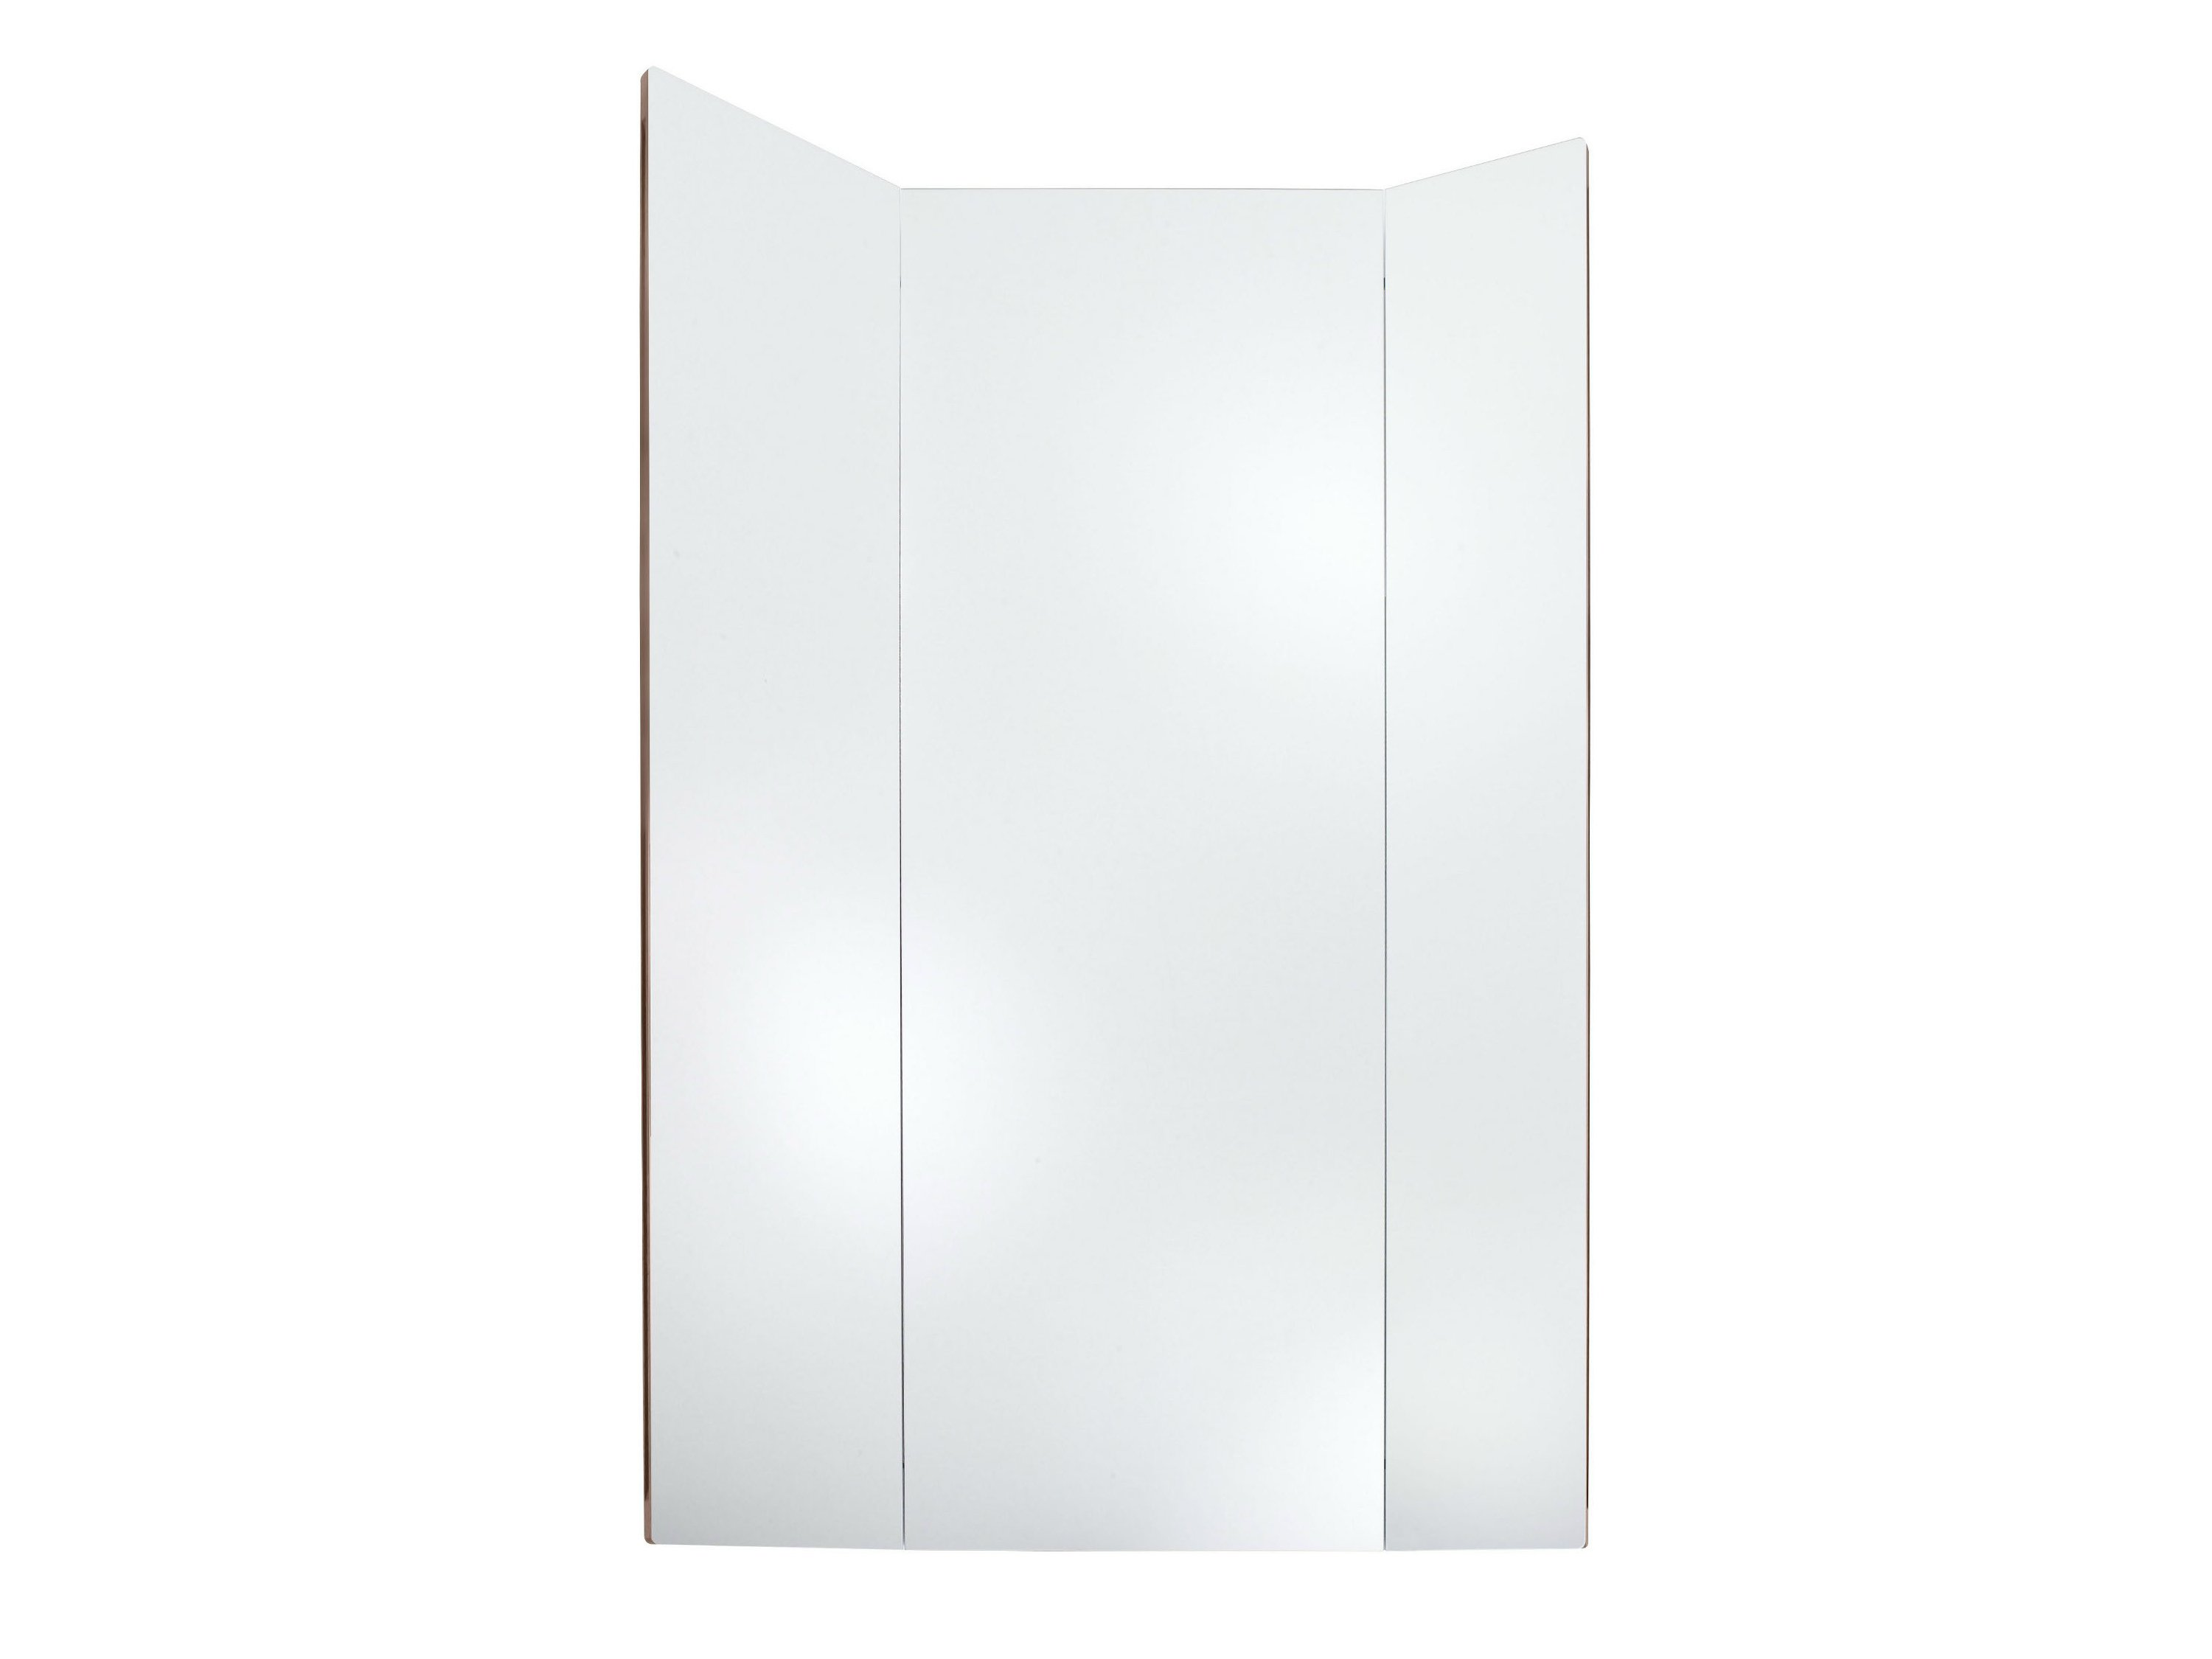 Miroir rectangulaire mural adonis by roset italia design for Miroir murale rectangulaire